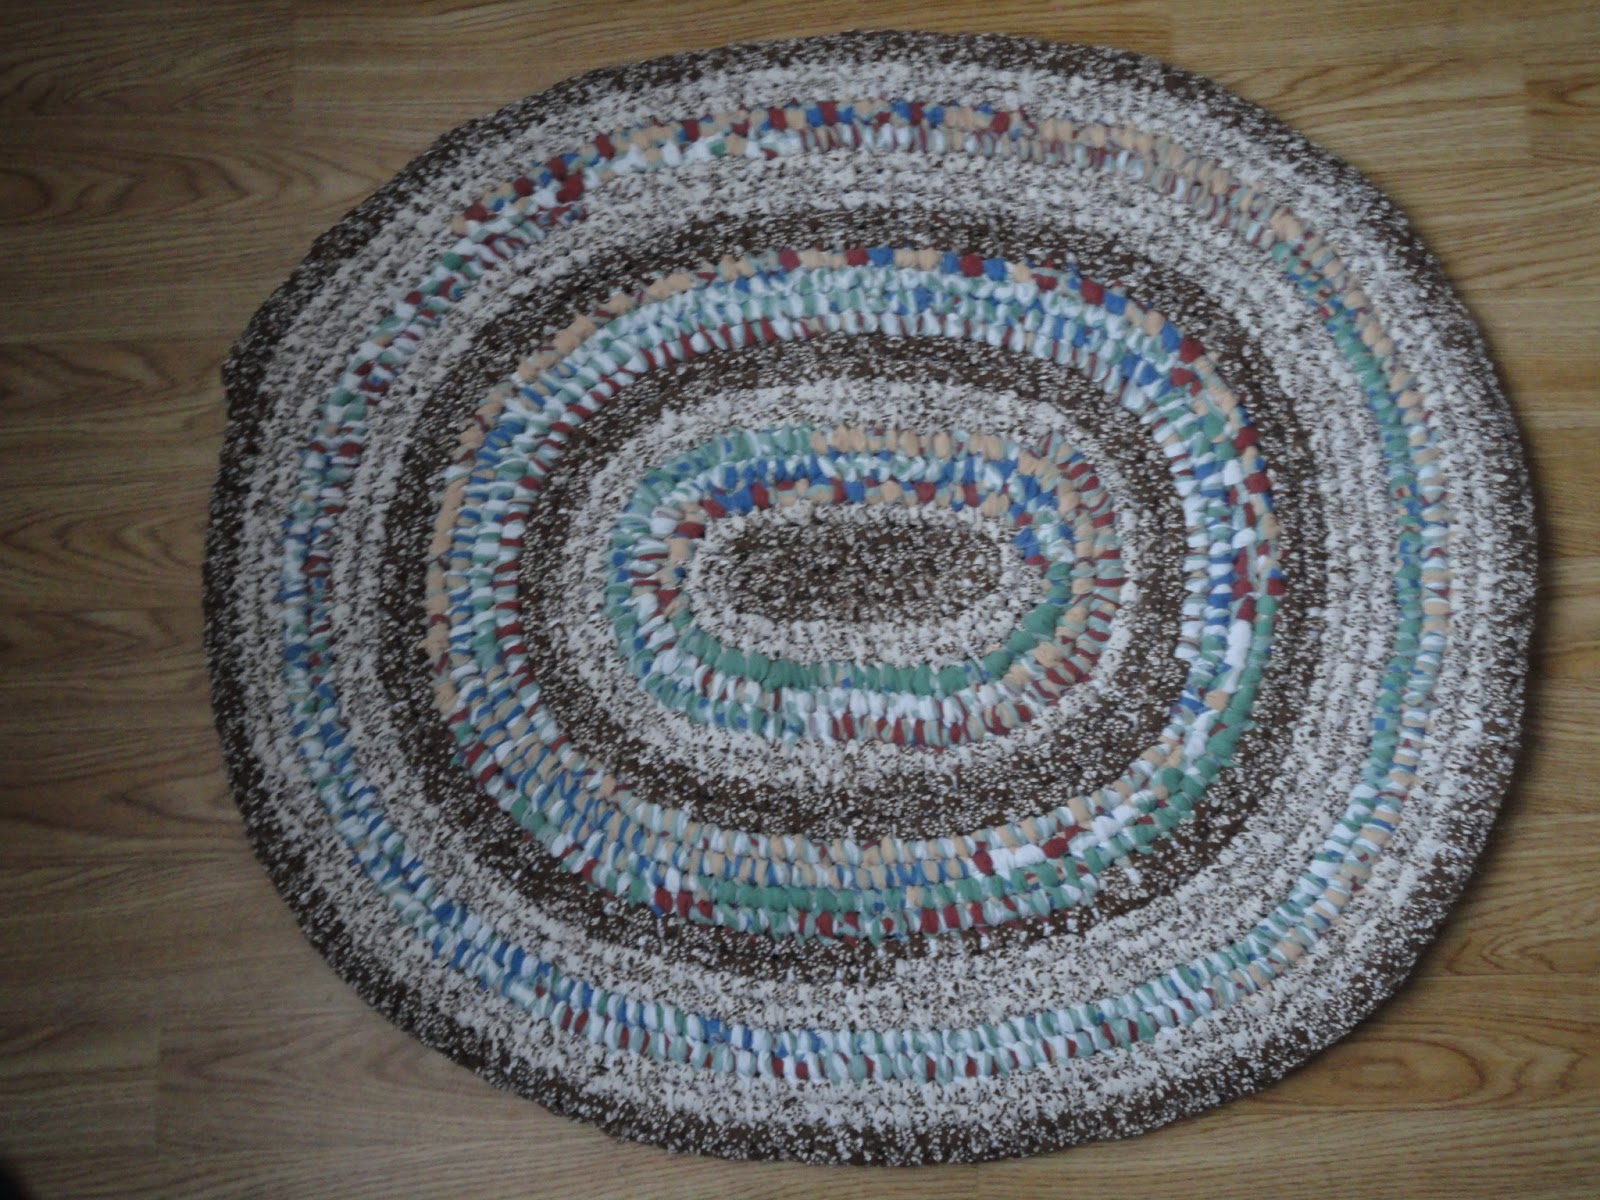 Toothbrush Rugs Are One Of The Easiest And Quickest Rag To Make They Easy Learn Inexpensive Result Is Gorgeous